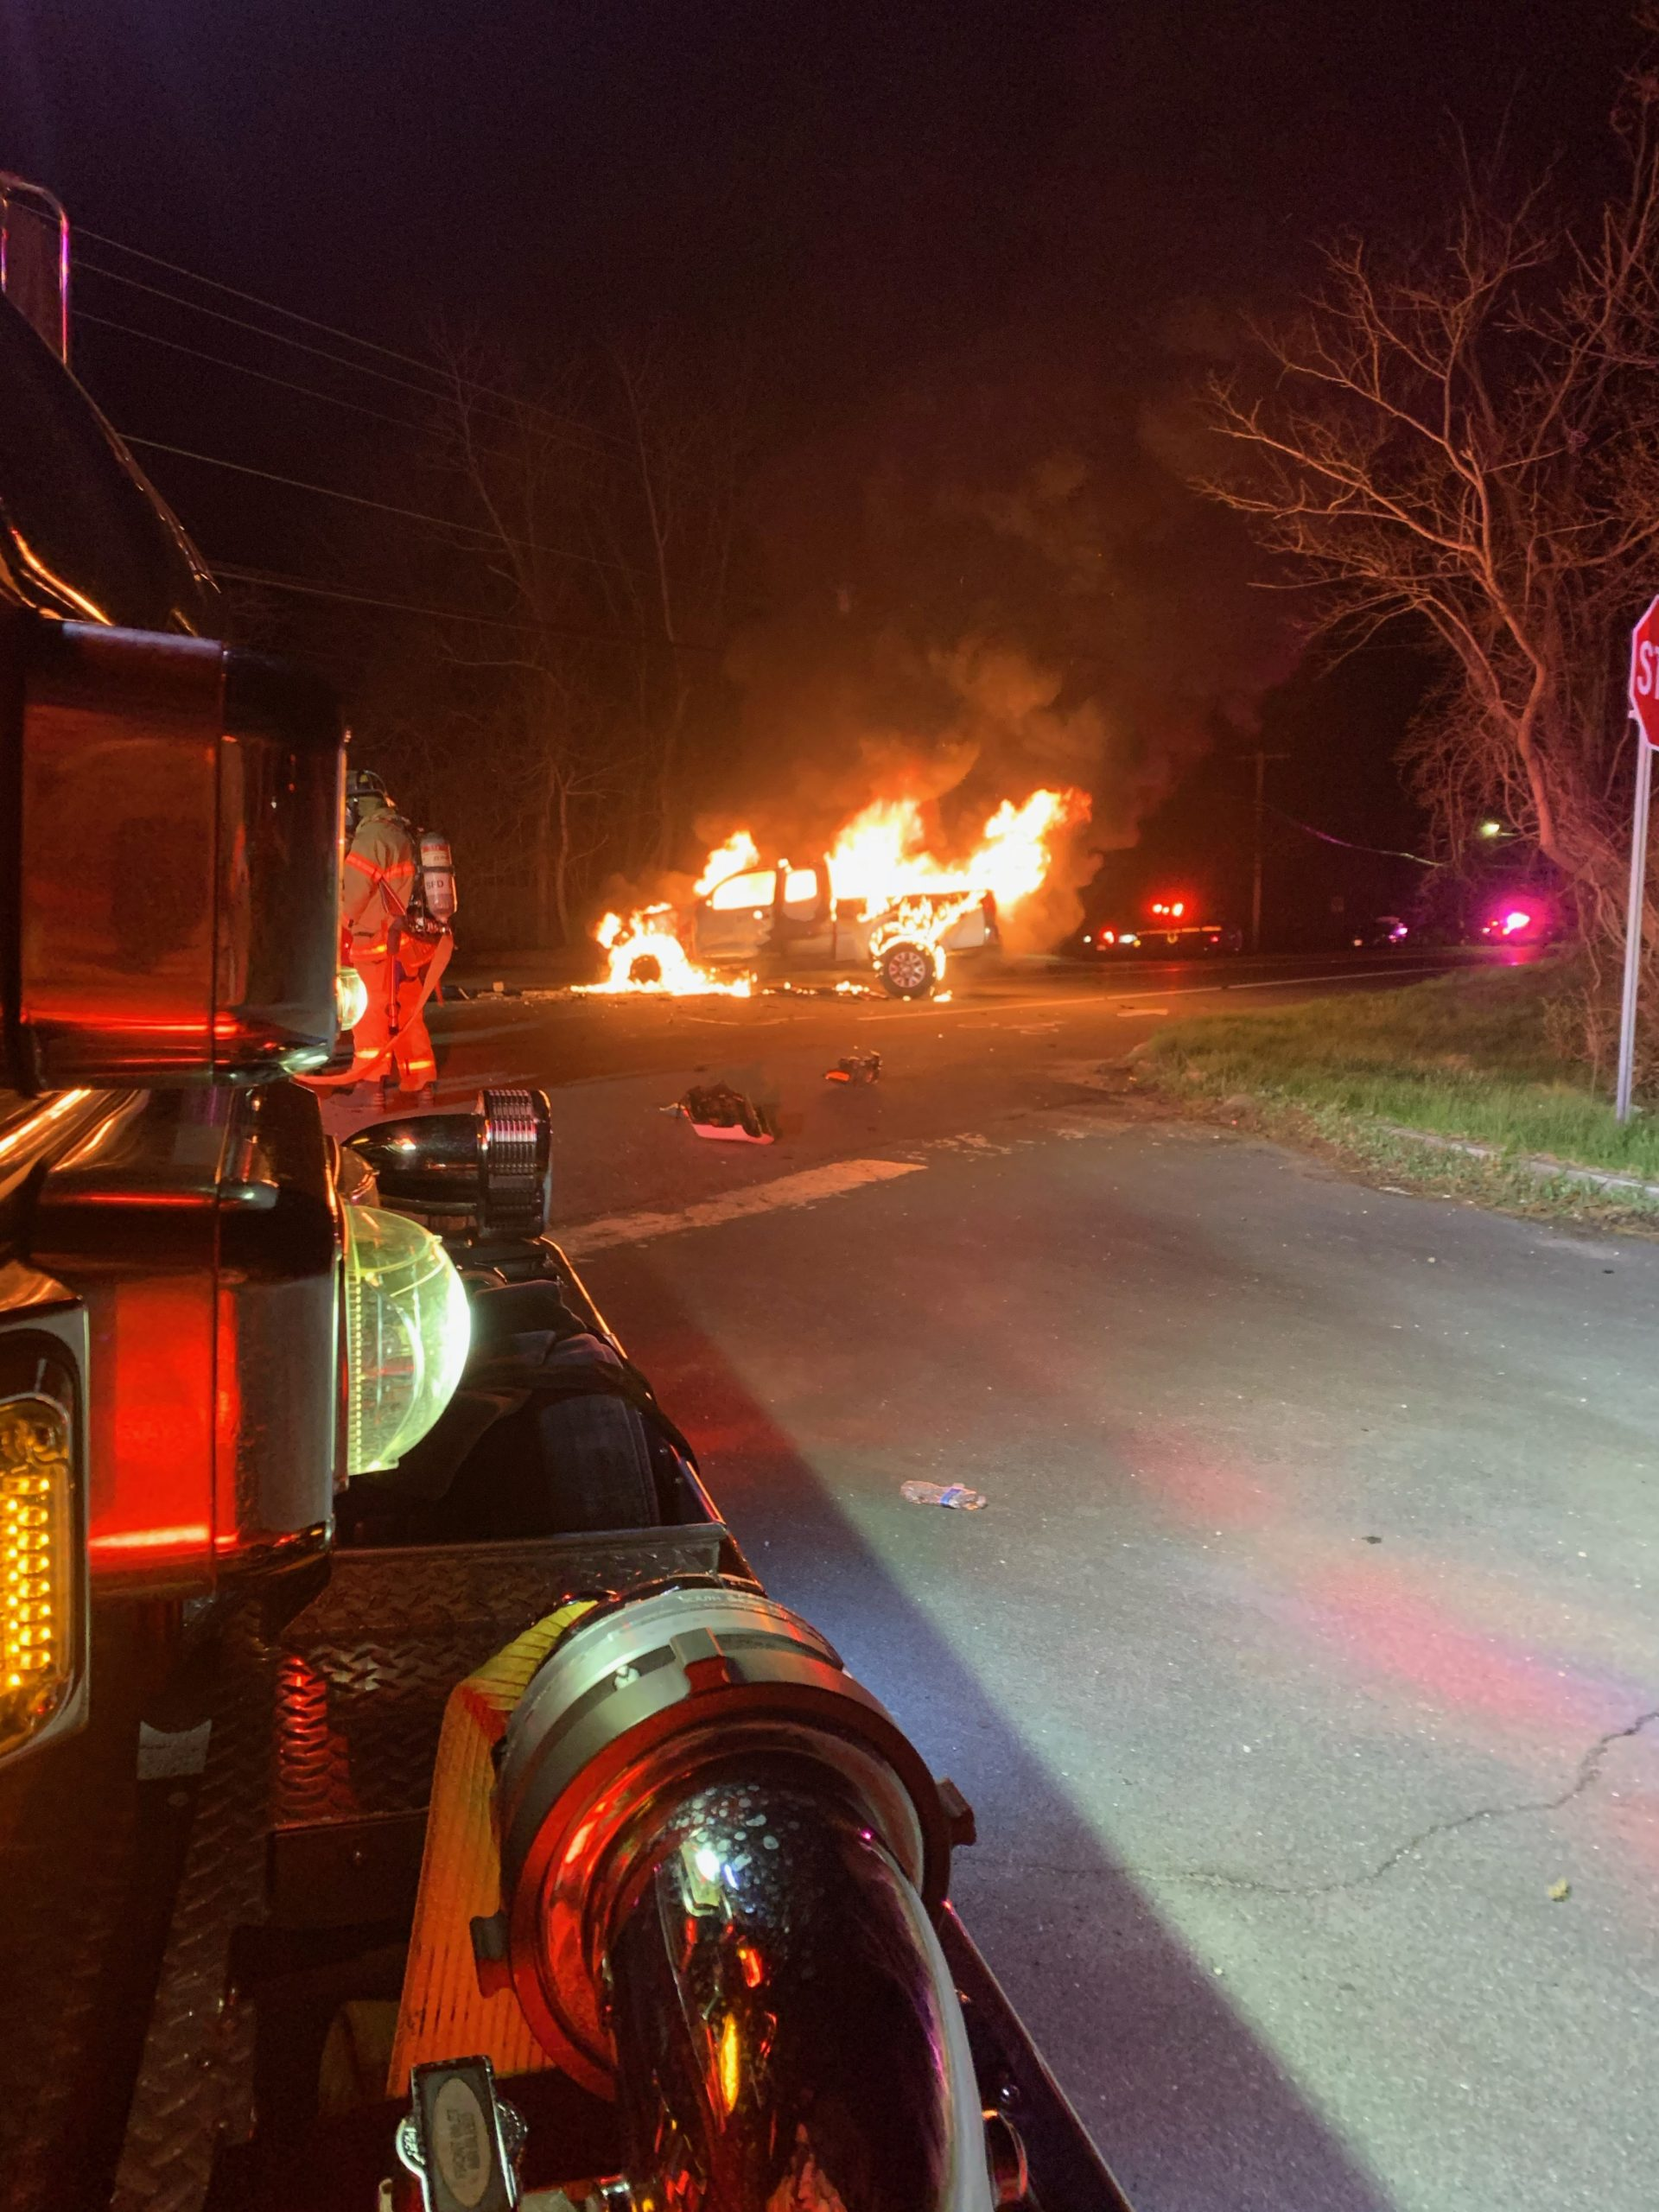 Firefighters responded to a truck fire on Wednesday night in Shinnecock Hills.